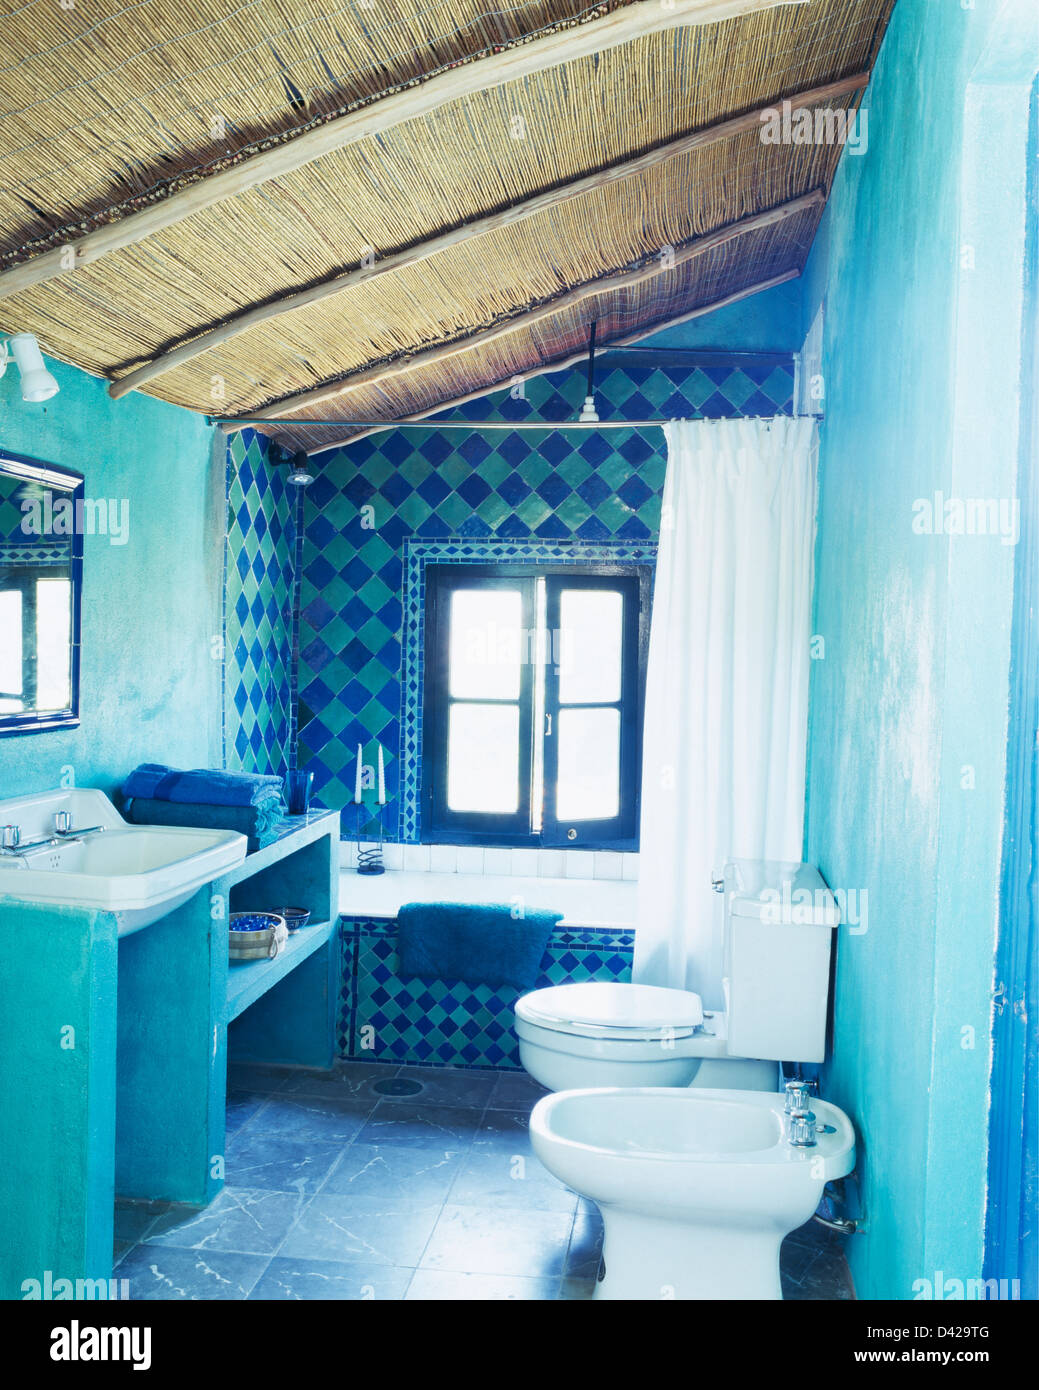 Thatched ceiling in turquoise Spanish bathroom with decorative ...